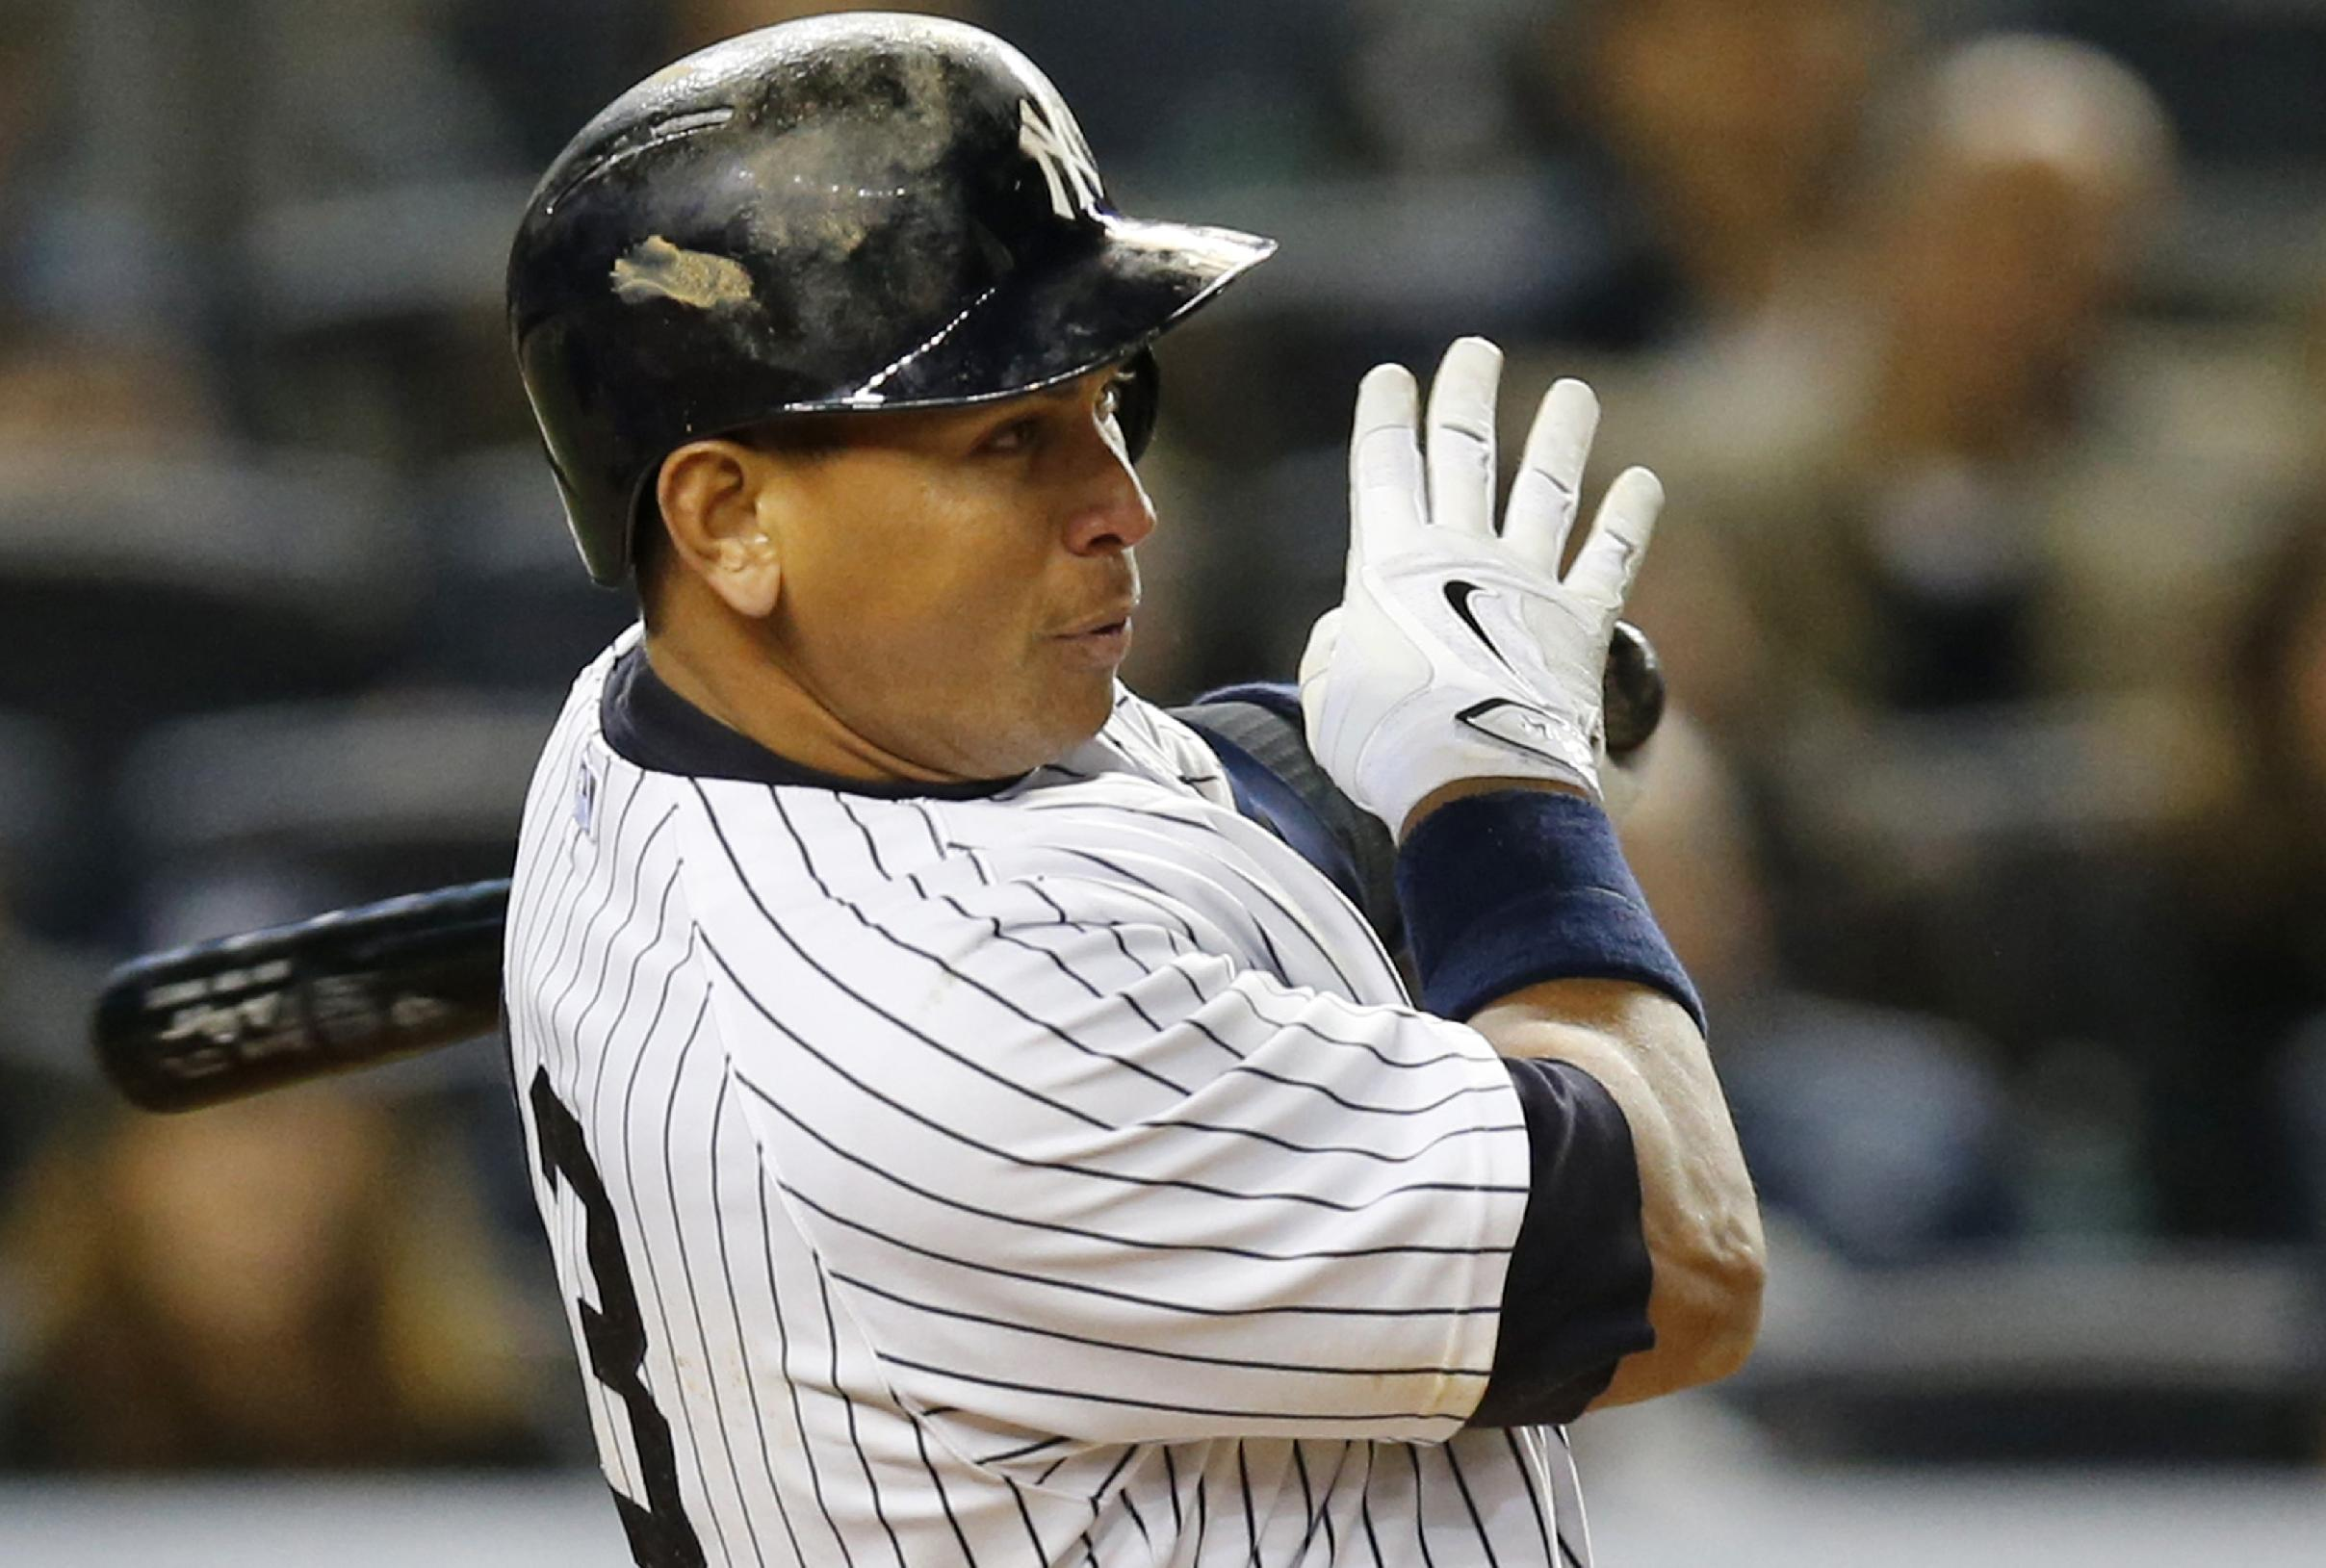 Alex Rodriguez hits home run No. 659 as Yankees topple Mets